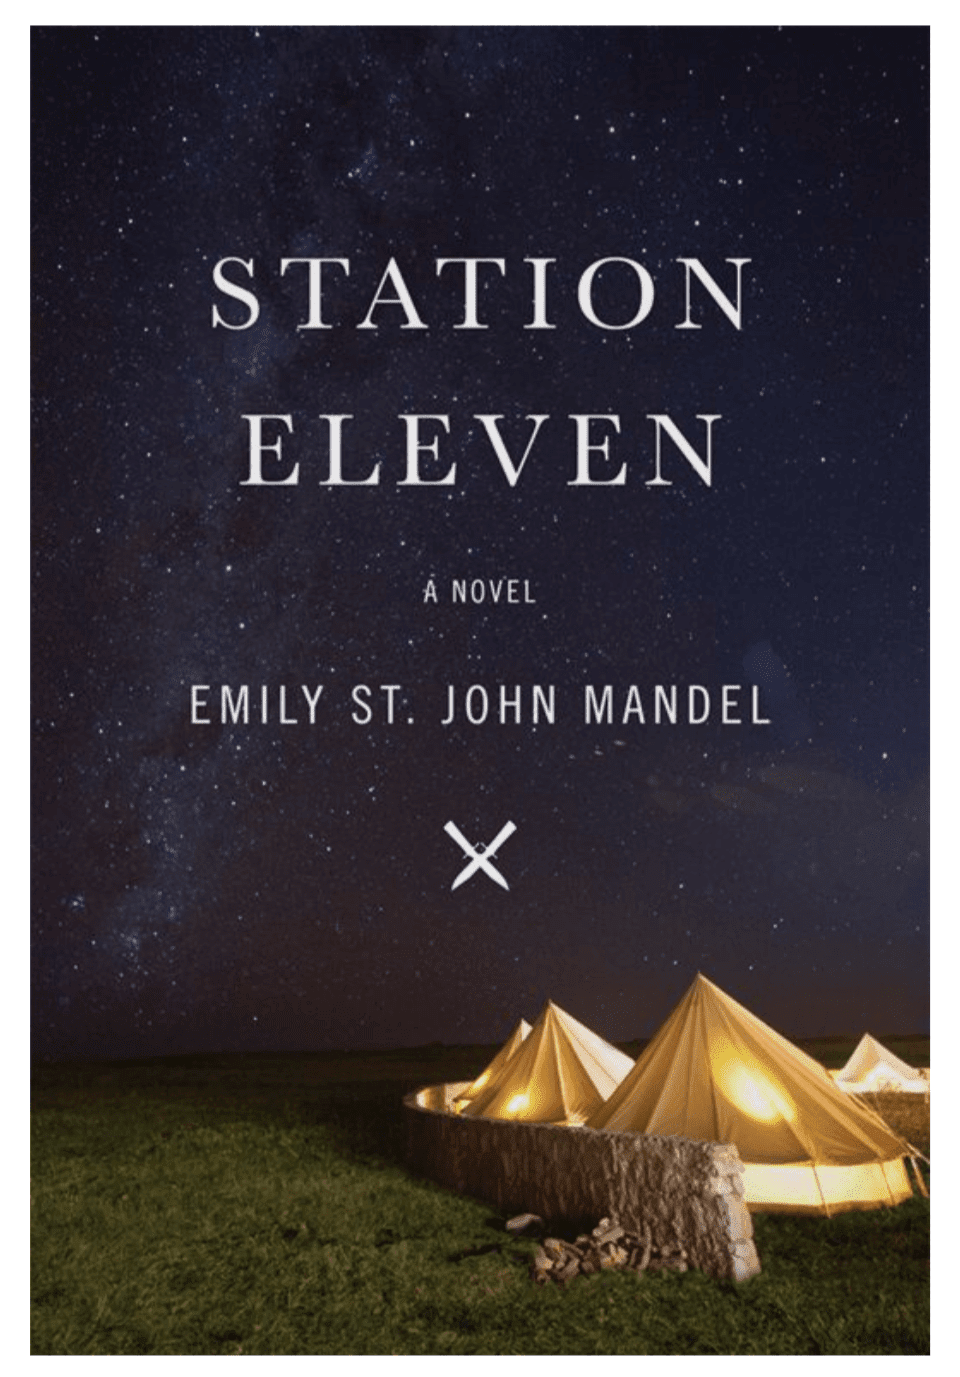 Station Eleven by Emily St. John Mandel | Superior Fiction | Book Review